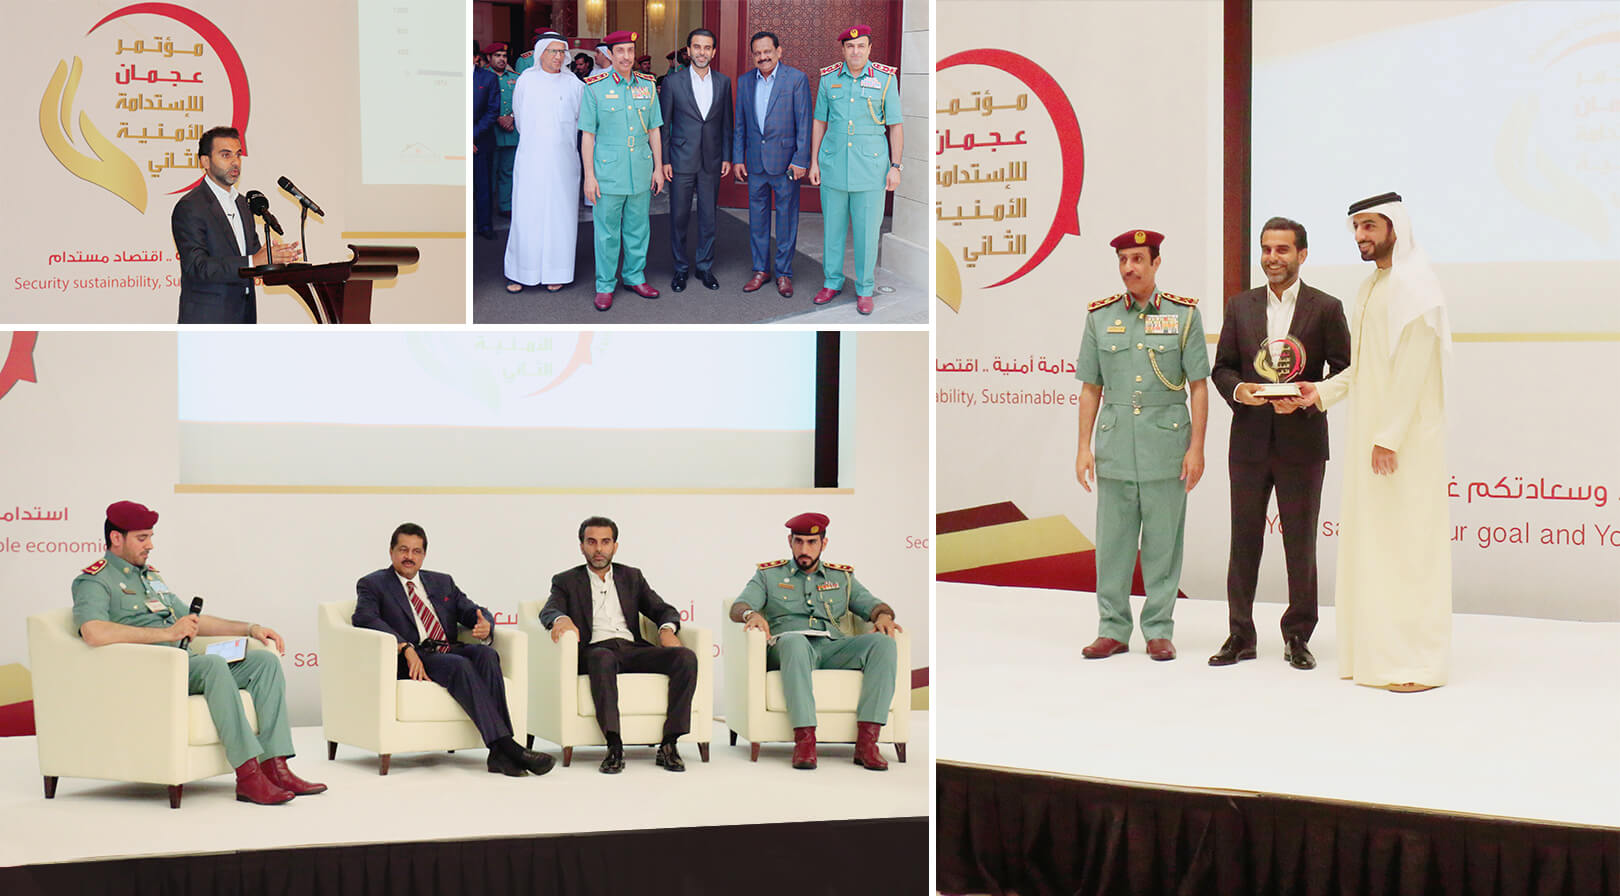 Ajman Second Security Sustainability Conference